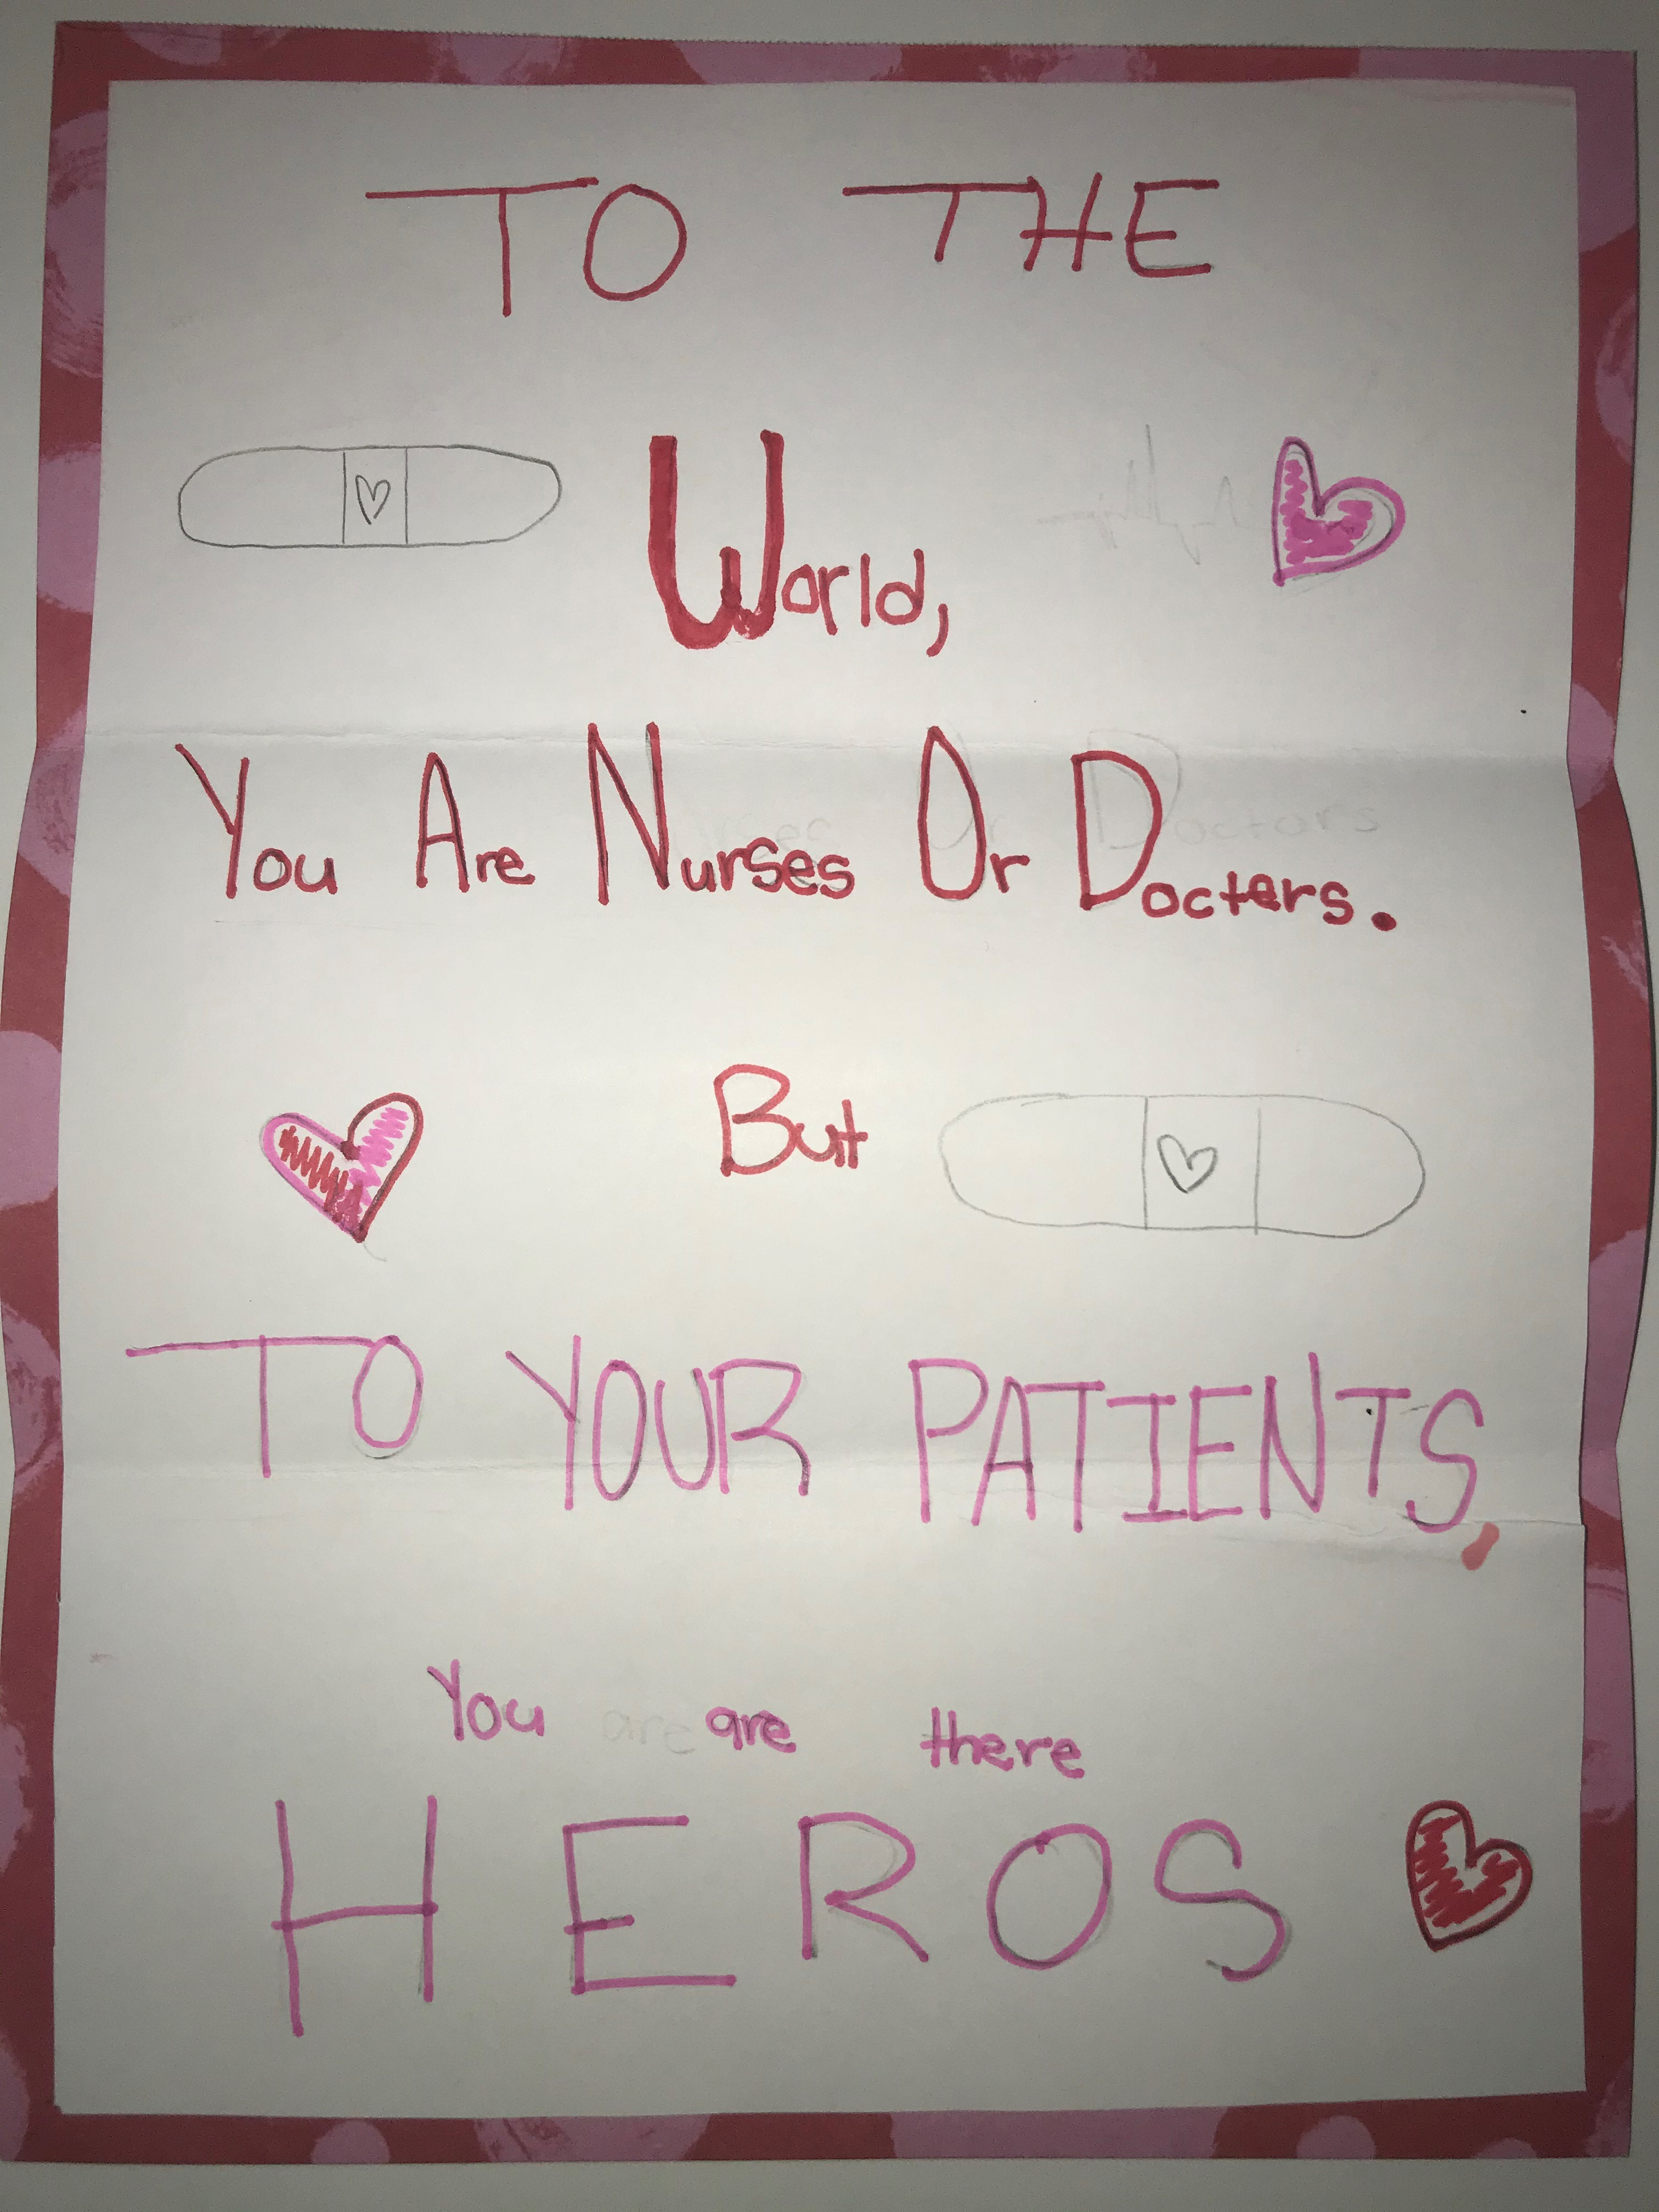 To the world, you are nurses and doctors. But to your patients, you are their heroes.